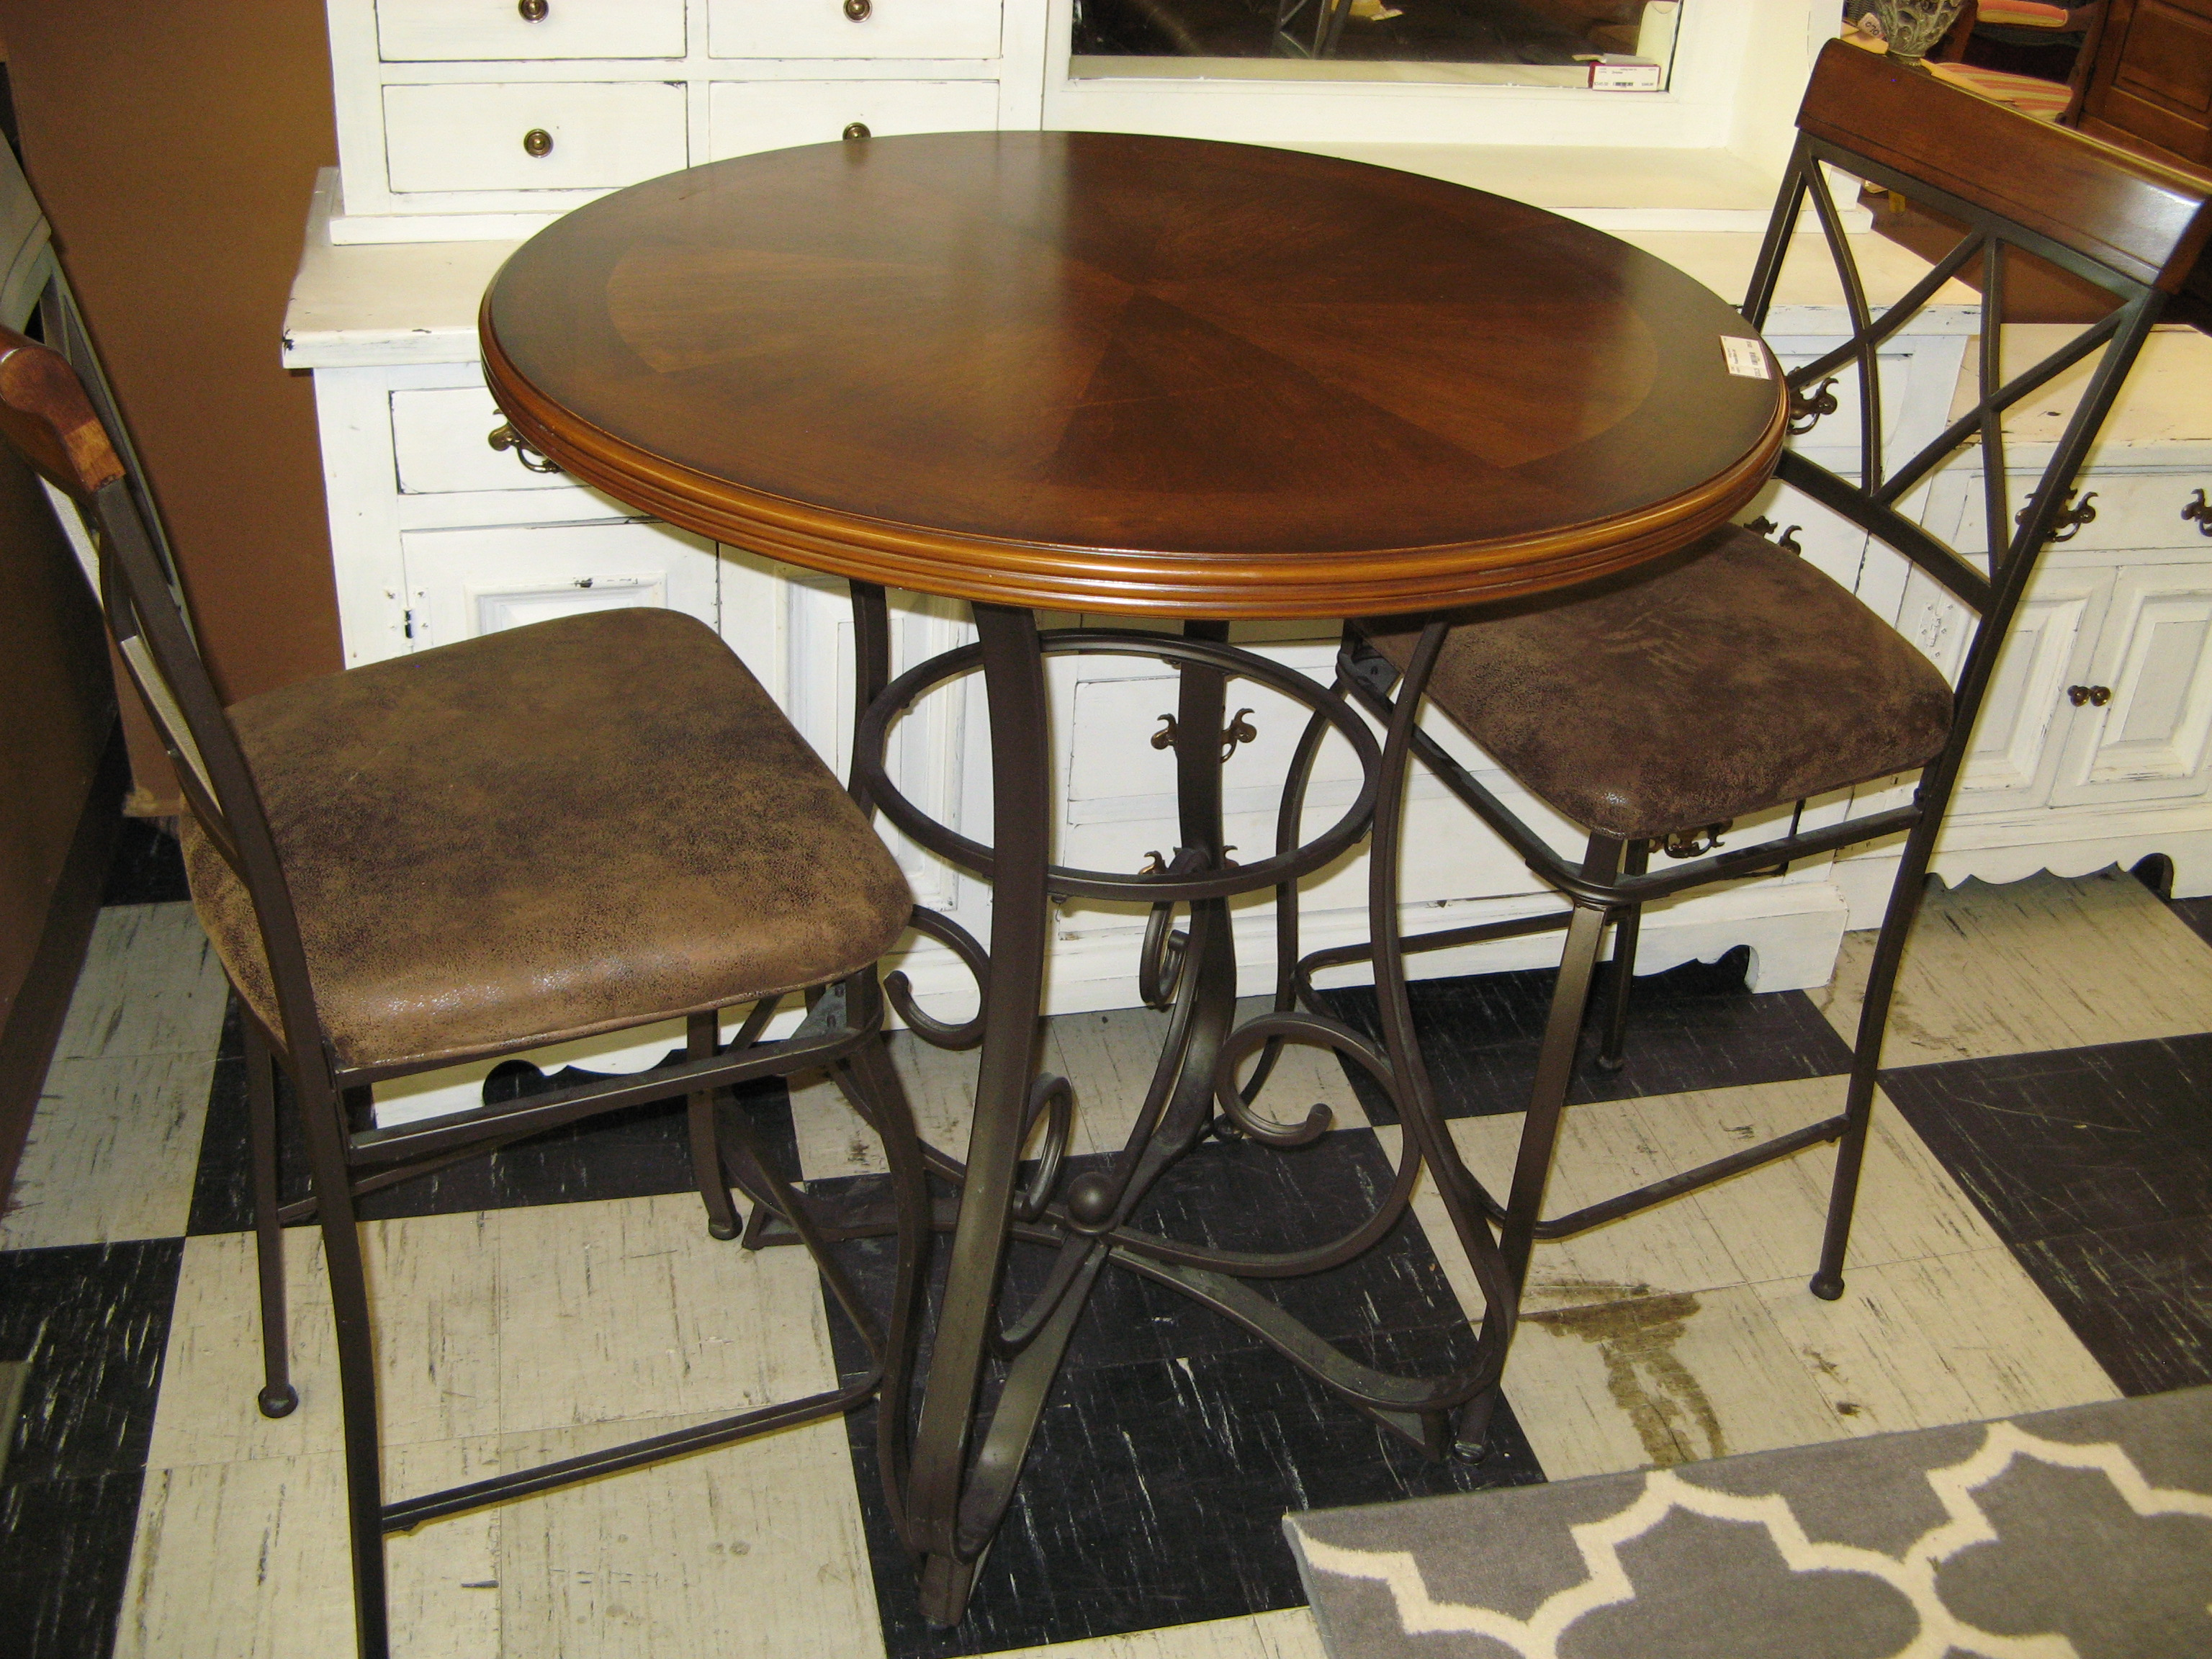 Round Bistro Set: Bar Height Table with 2 Matching Bar Stool-Chairs